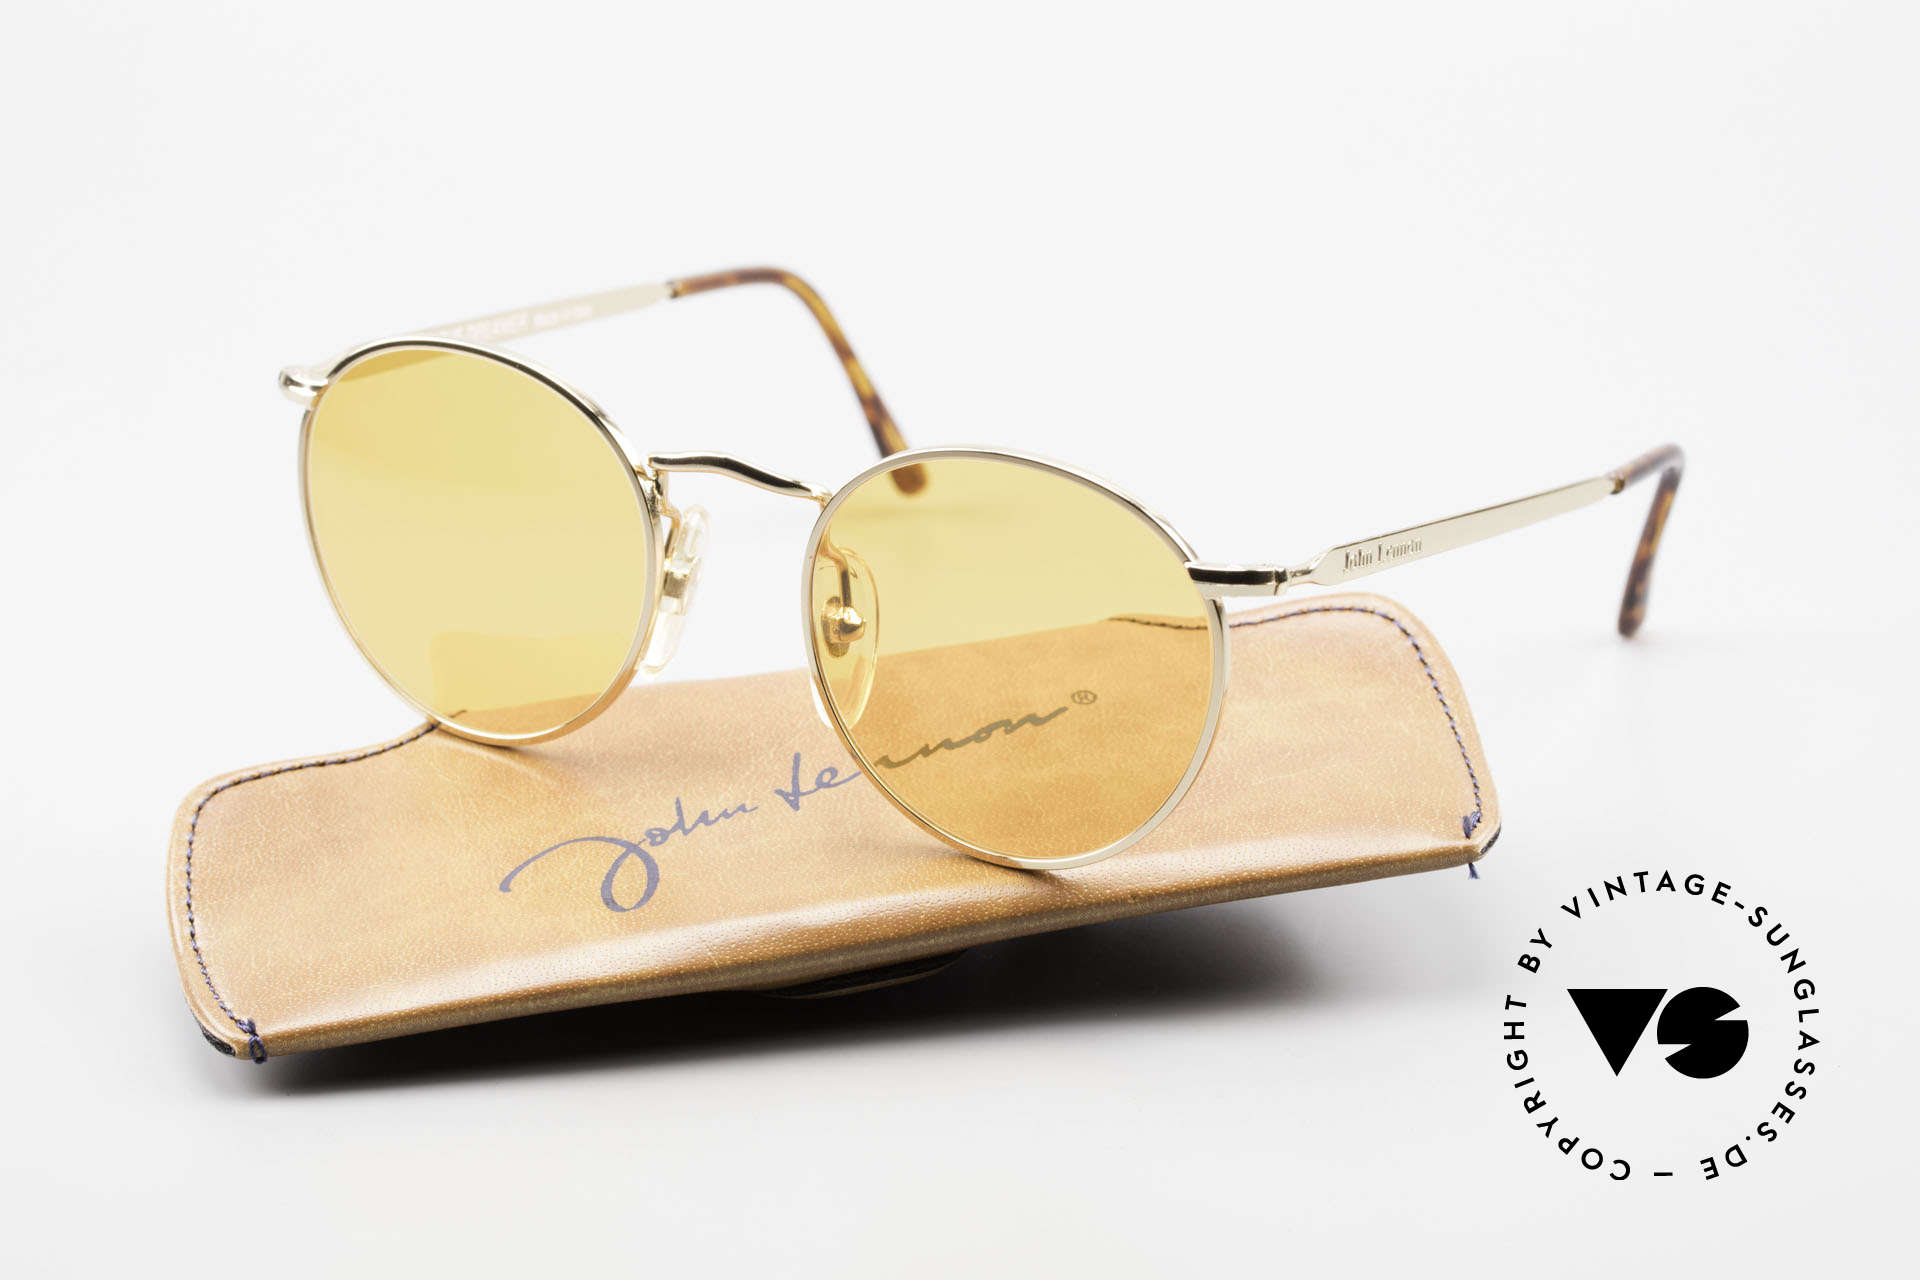 John Lennon - The Dreamer Extra Small Round Sunglasses, 118mm frame width = EXTRA SMALL fit; 47mm lens size, Made for Men and Women